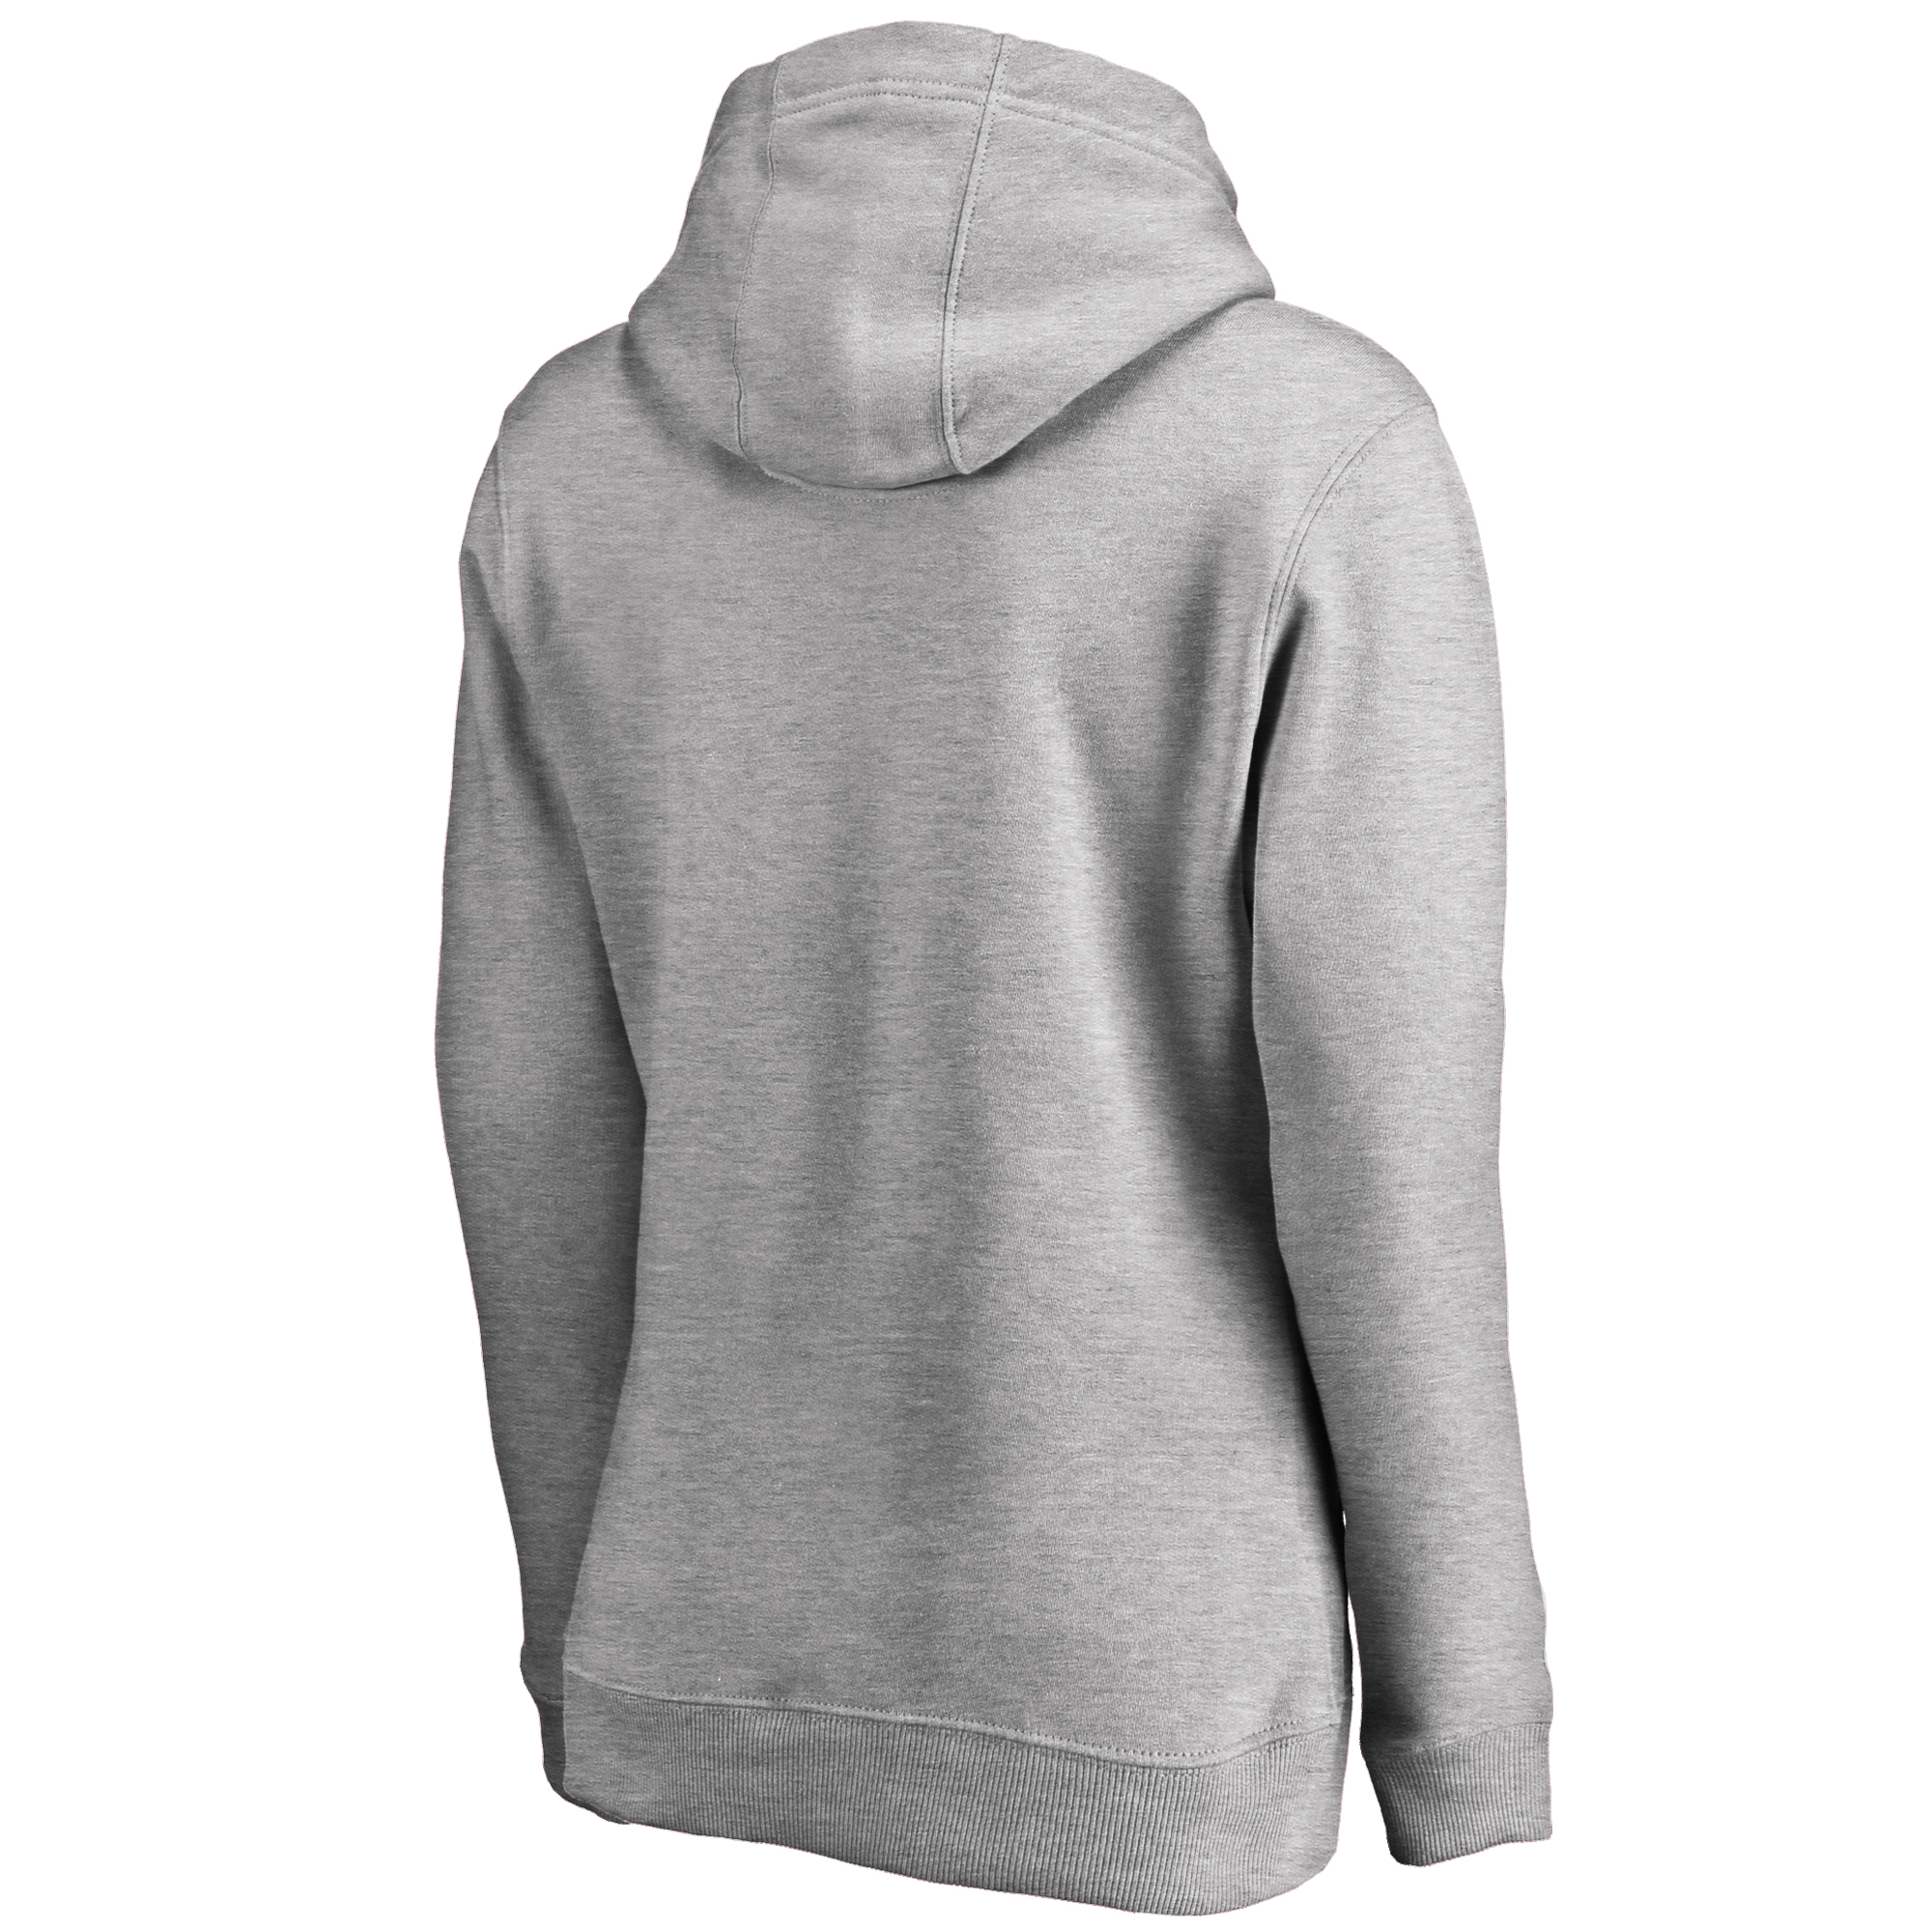 41926219c1d Chicago Bears NFL Pro Line by Fanatics Branded Women s Victory Script  Pullover Hoodie - Heathered Gray - Walmart.com